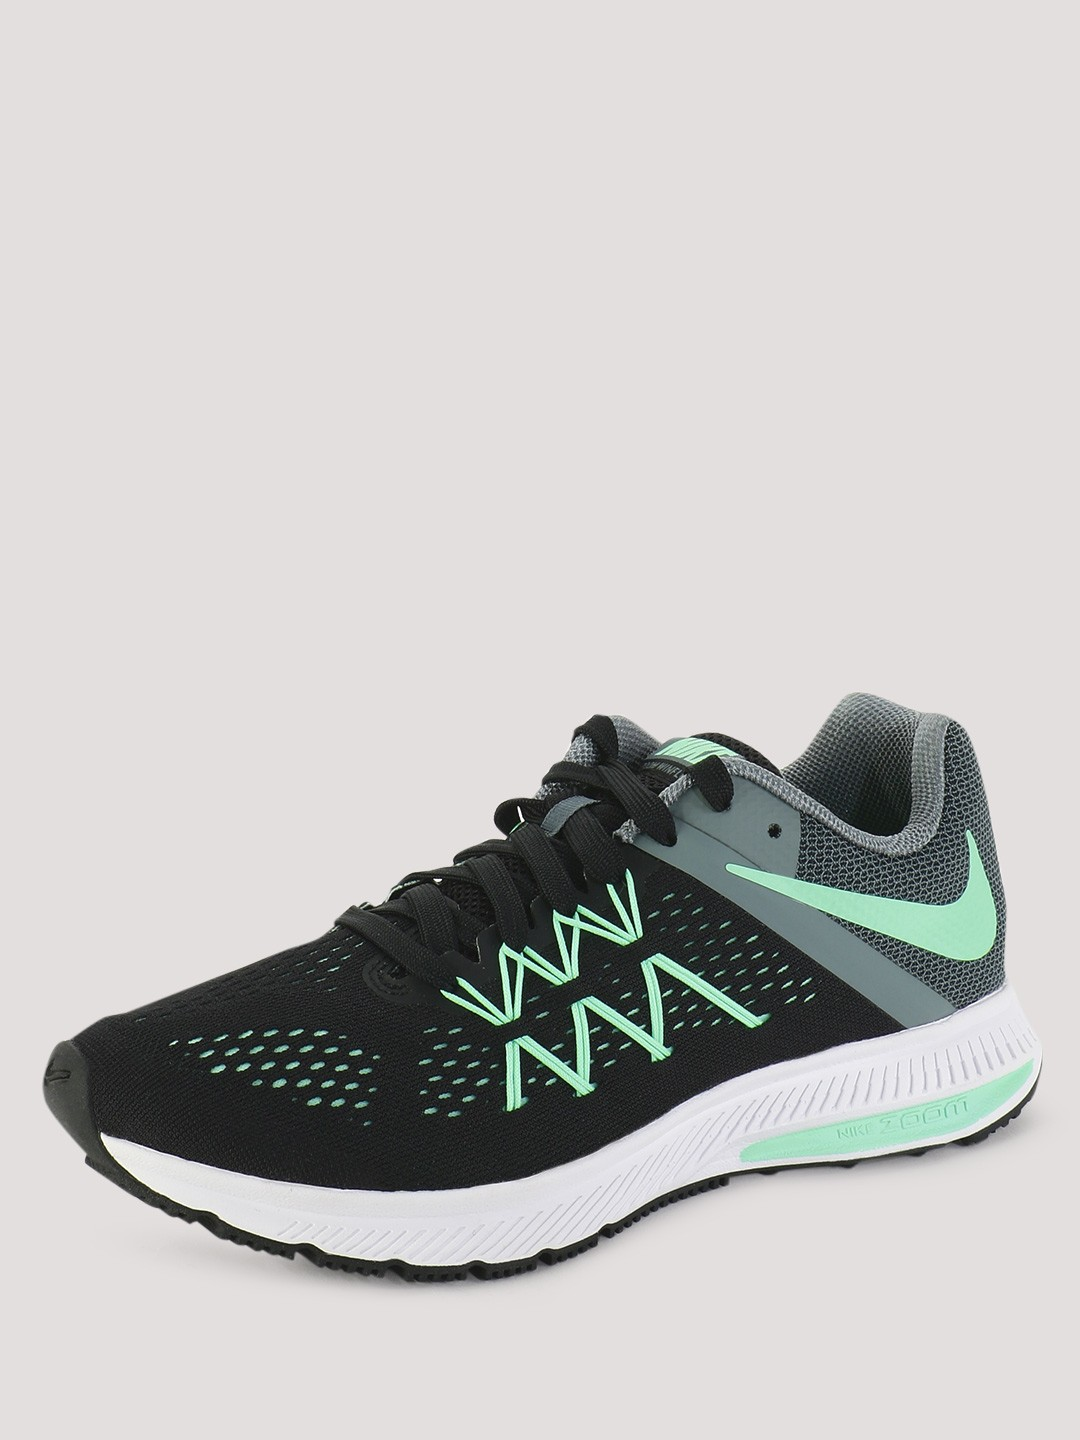 Model Nike Zoom Winflo 2 Women39s Running Shoes PaalITW  GuitarBitscomau